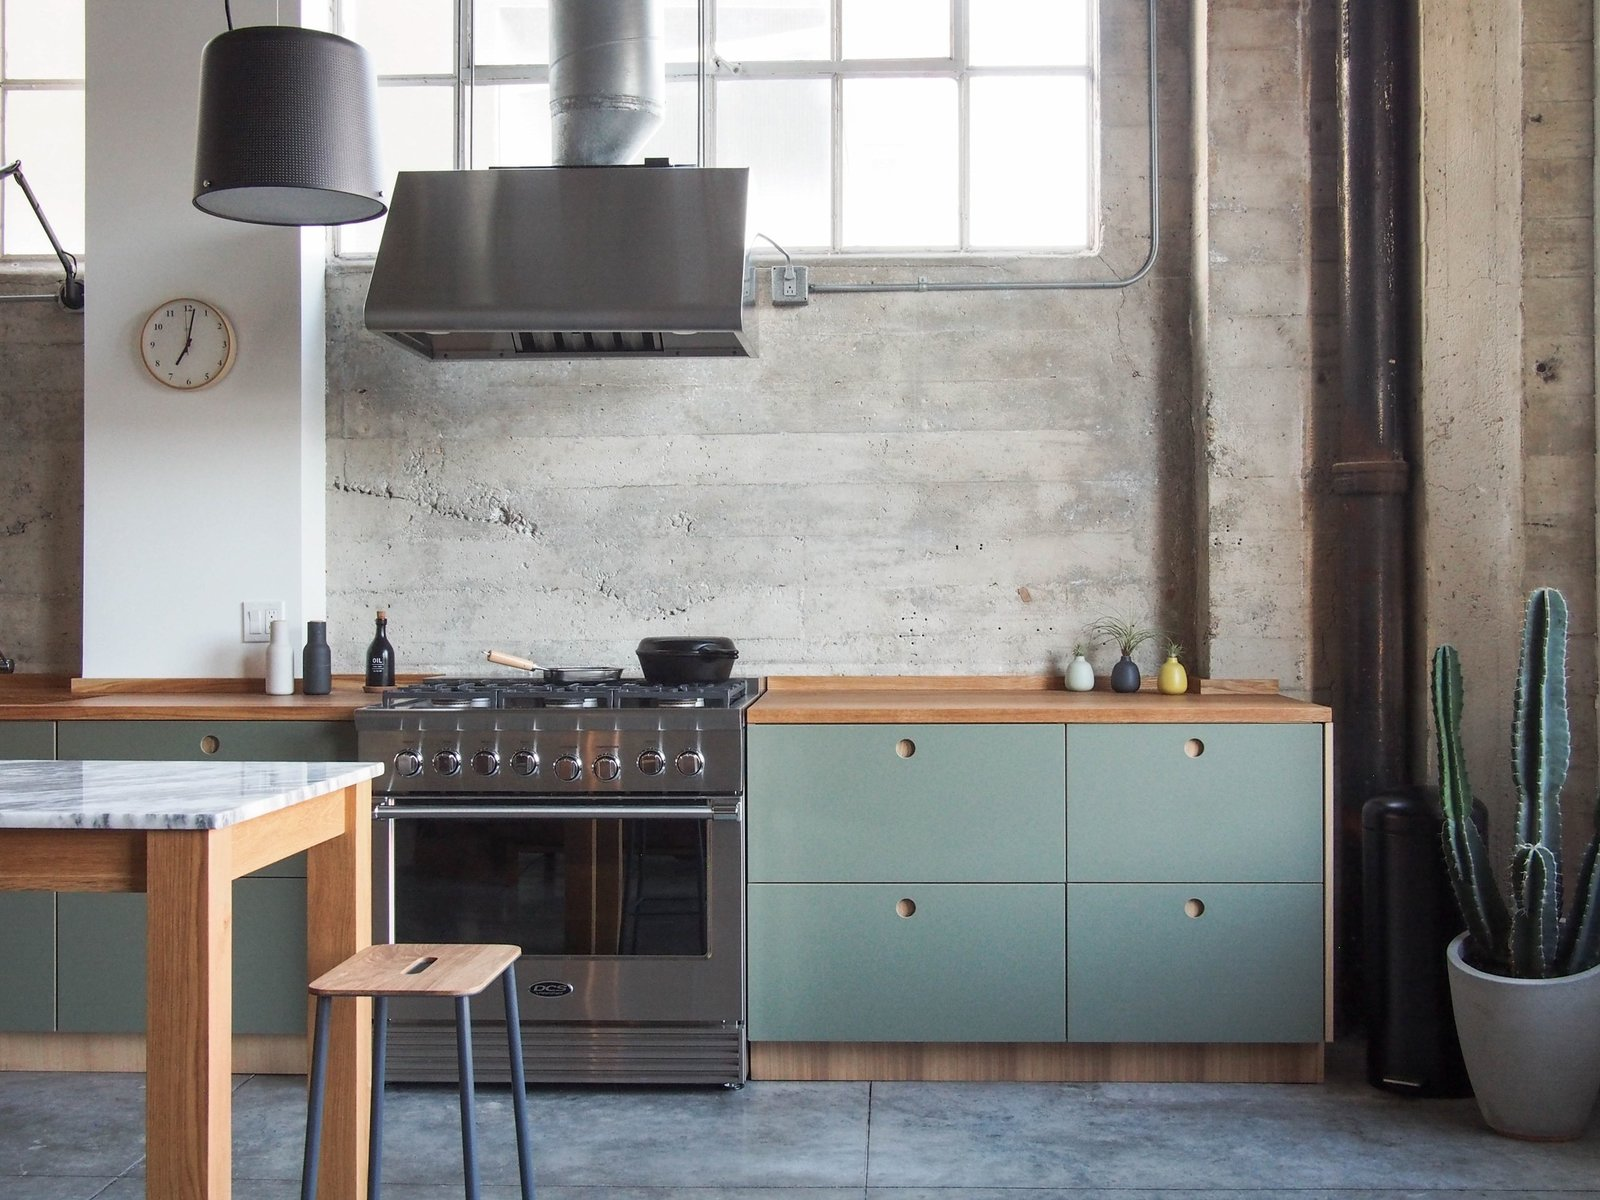 kitchen upgrade ideas light fixtures for kitchens photo 5 of 9 in modern from a danish